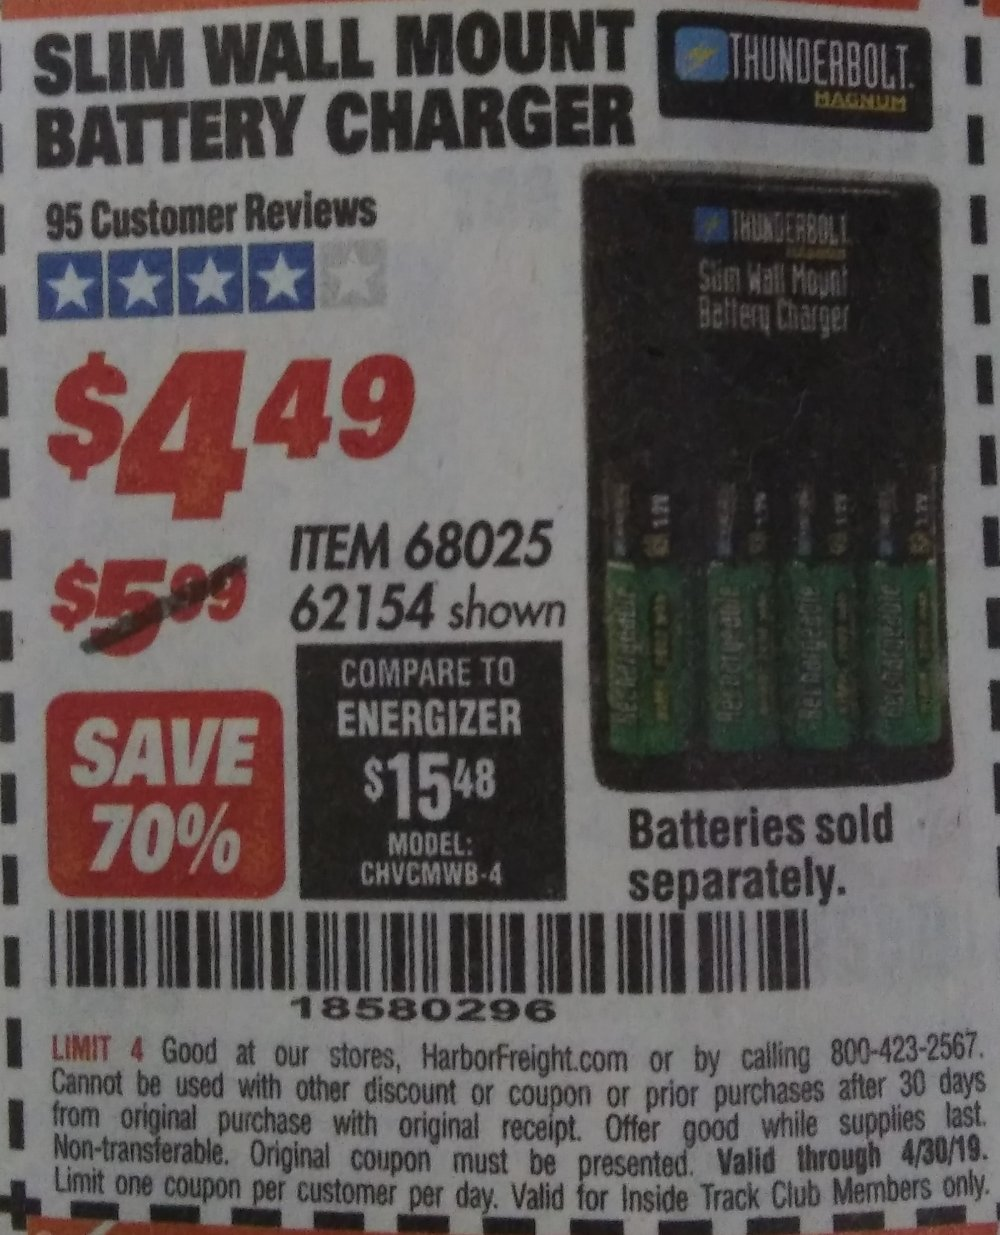 Harbor Freight Coupon, HF Coupons - Slim Wall Mount Battery Charger